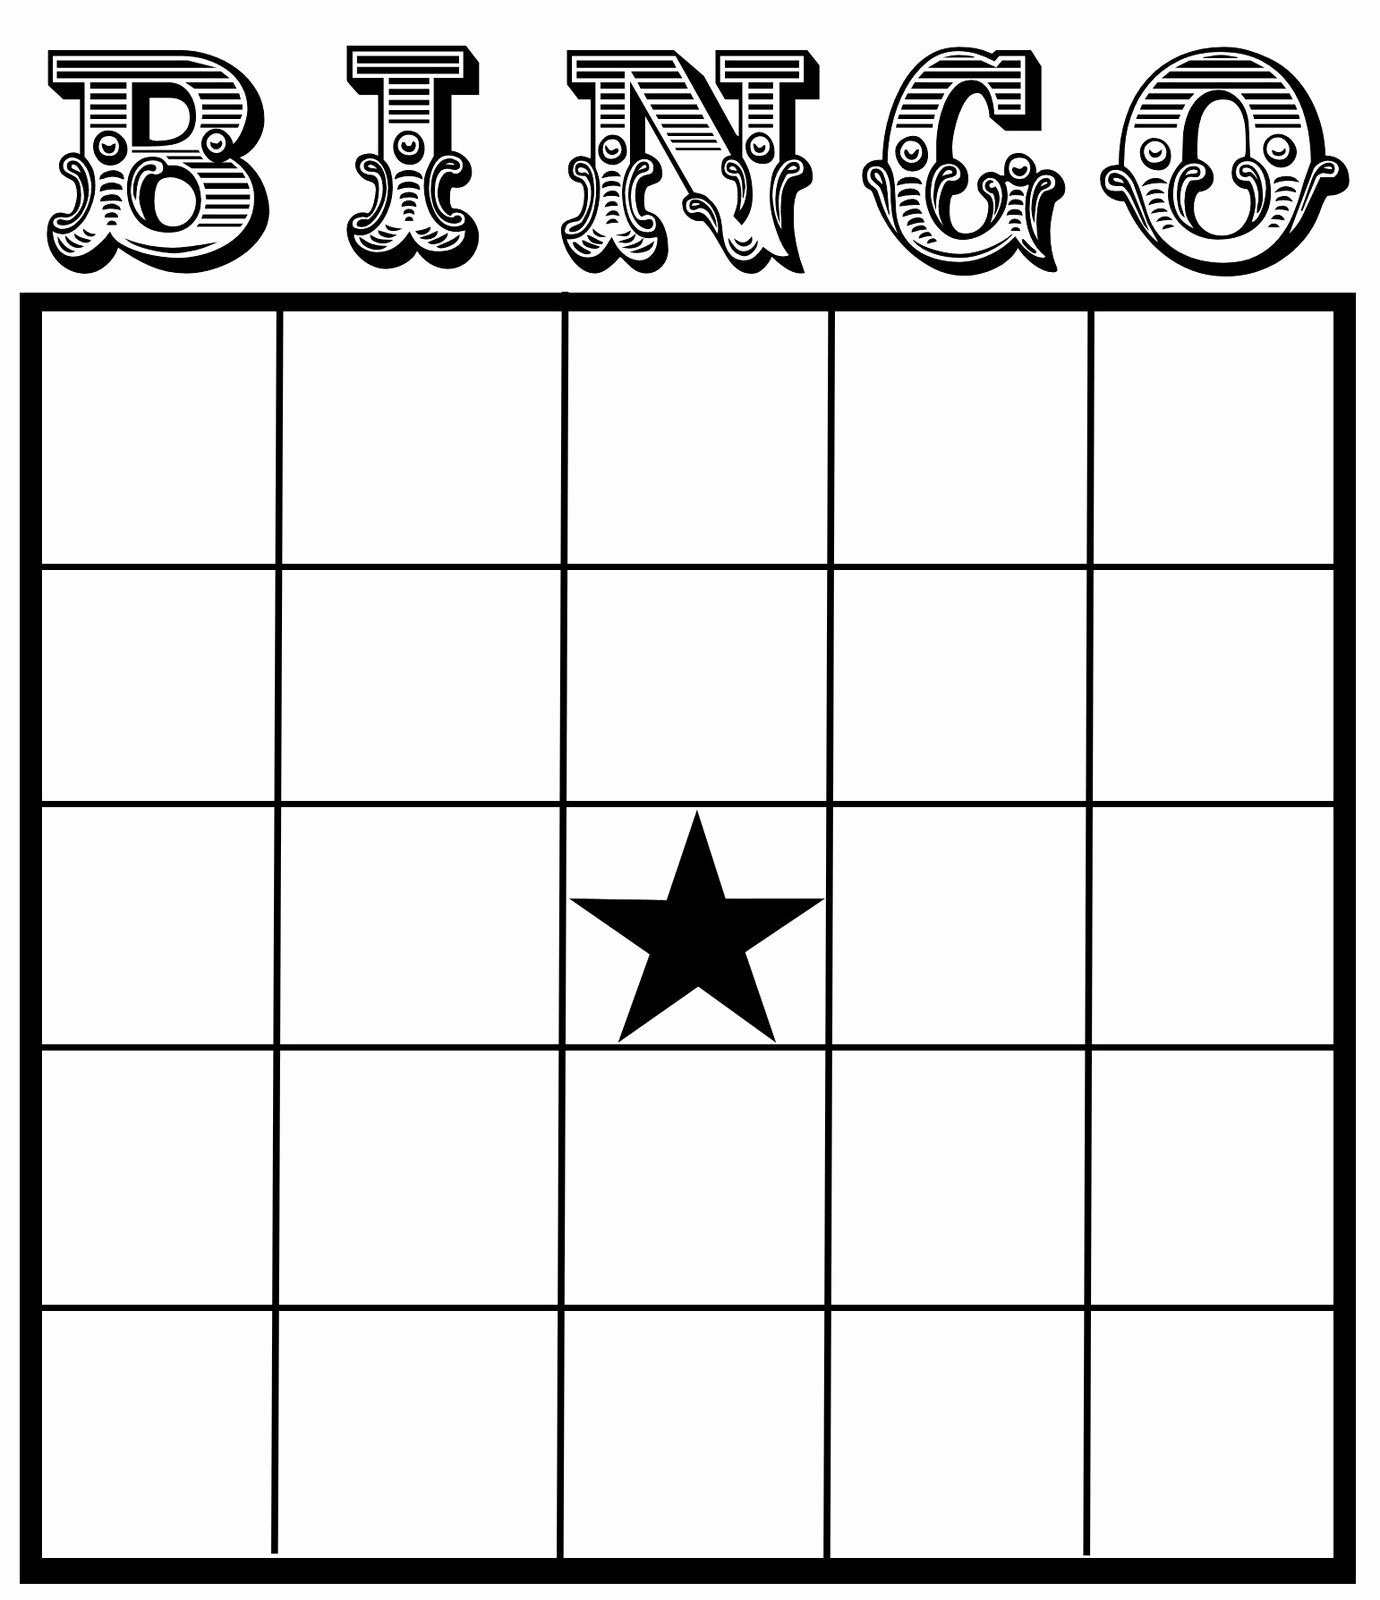 Free Blank Bingo Template Awesome Christine Zani Bingo Card Printables to